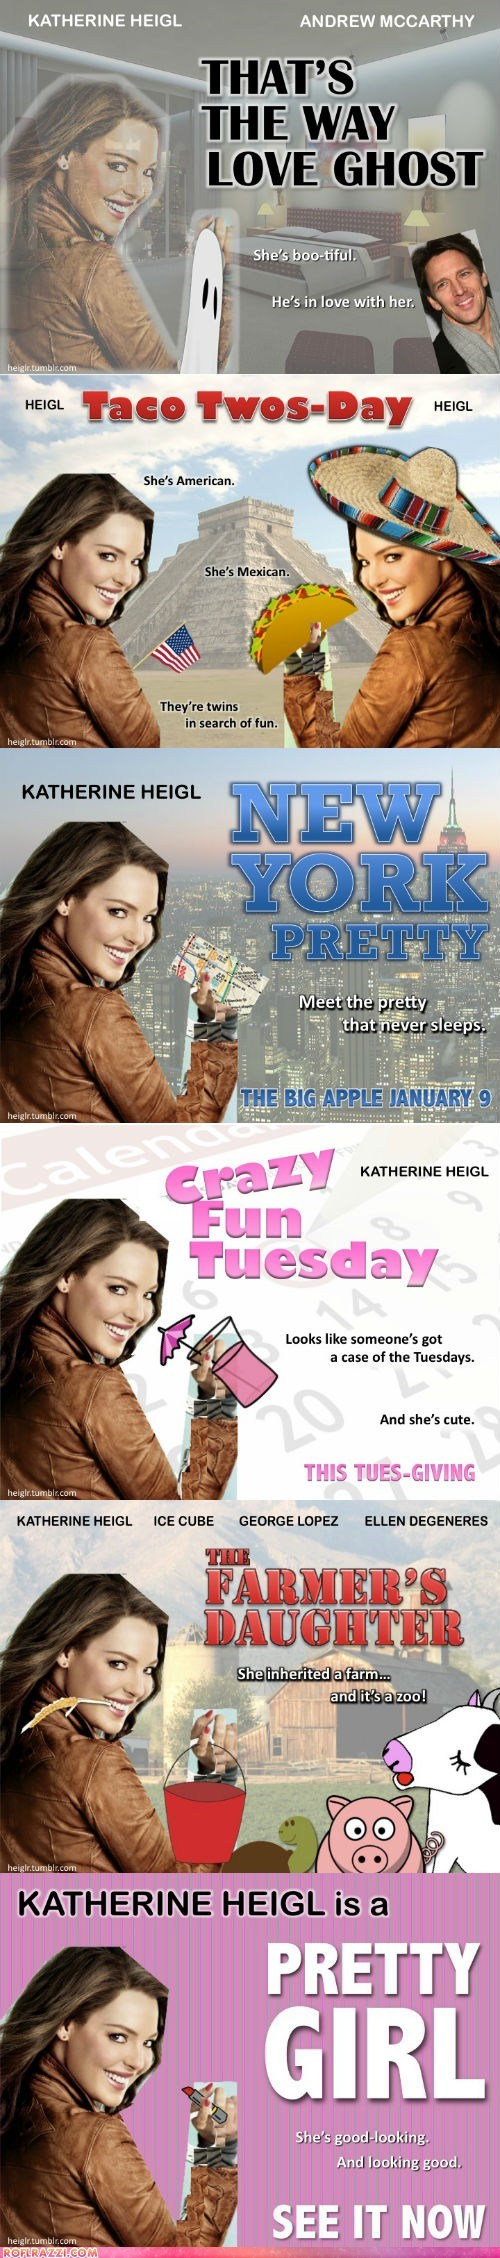 fake,katherine heigl,movie posters,movies,romantic comedies,stupid